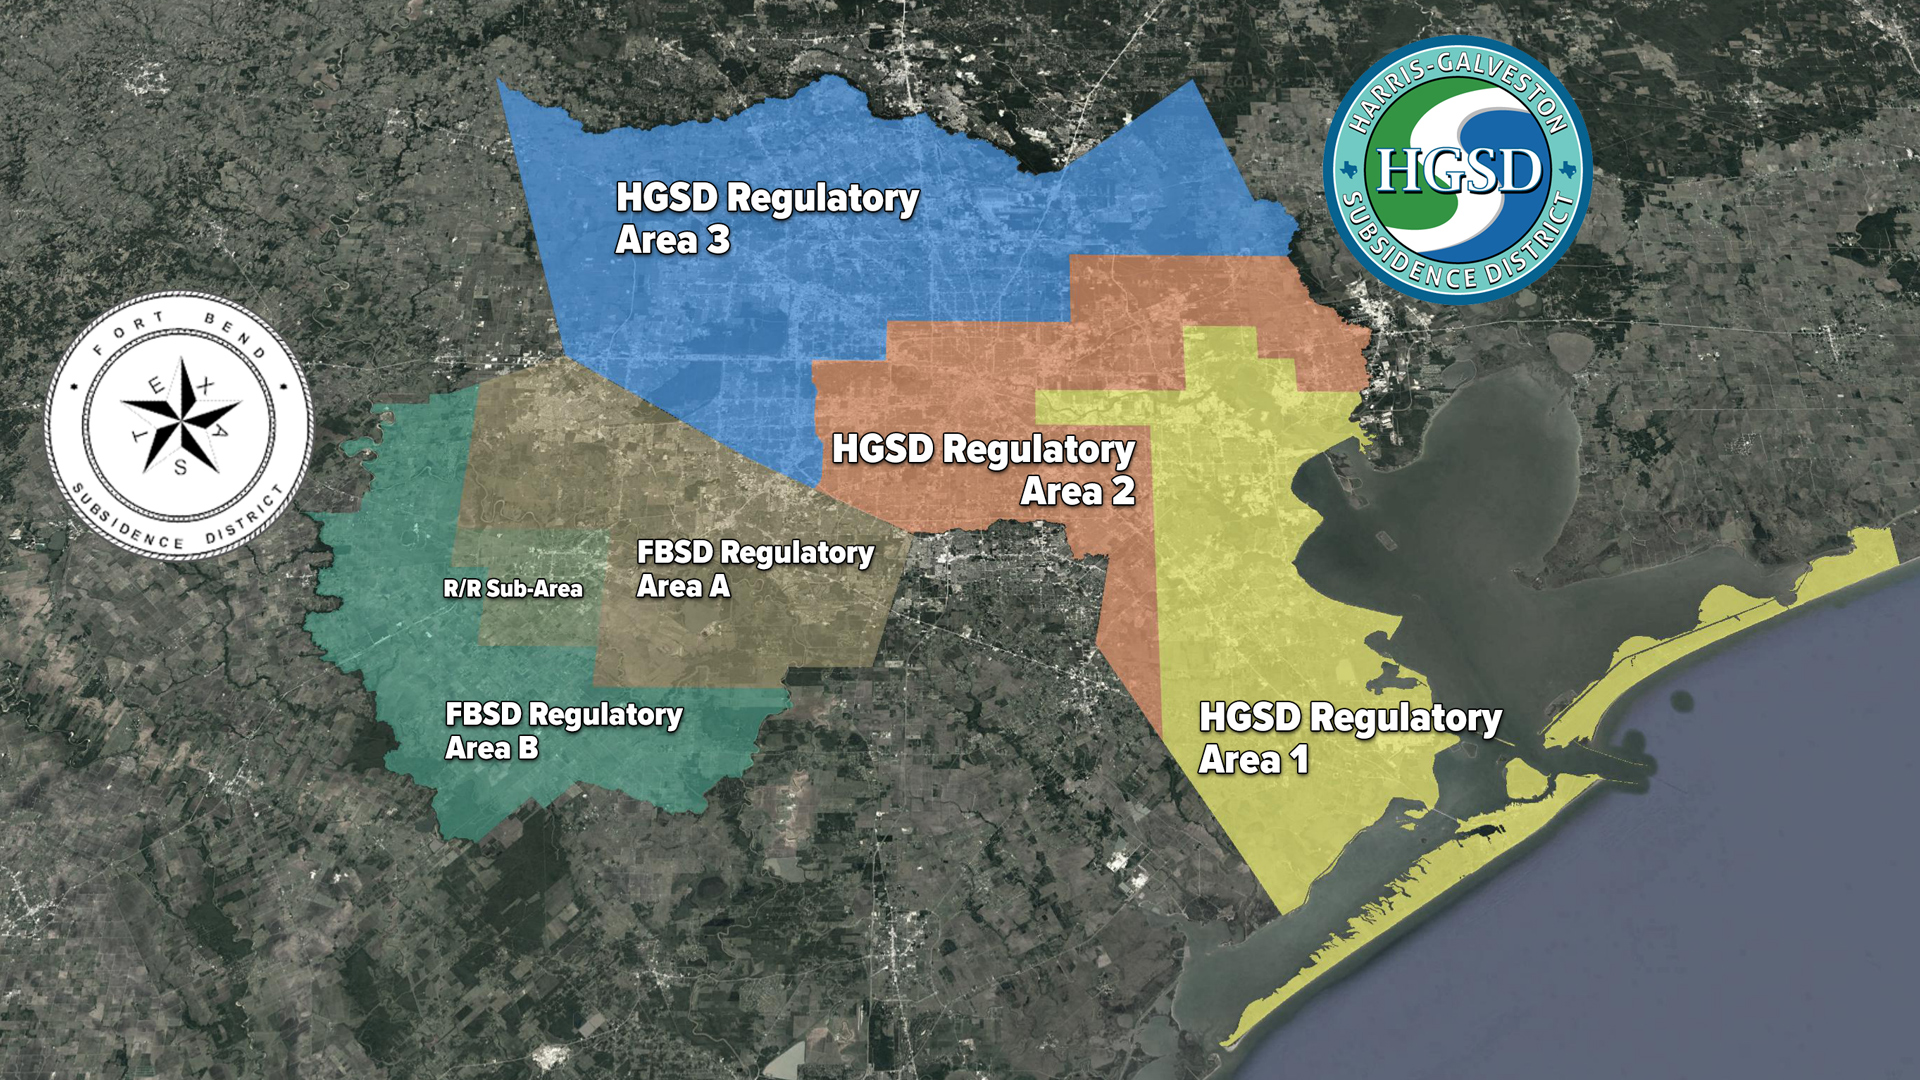 HGSD and FBSD Regulatory Areas